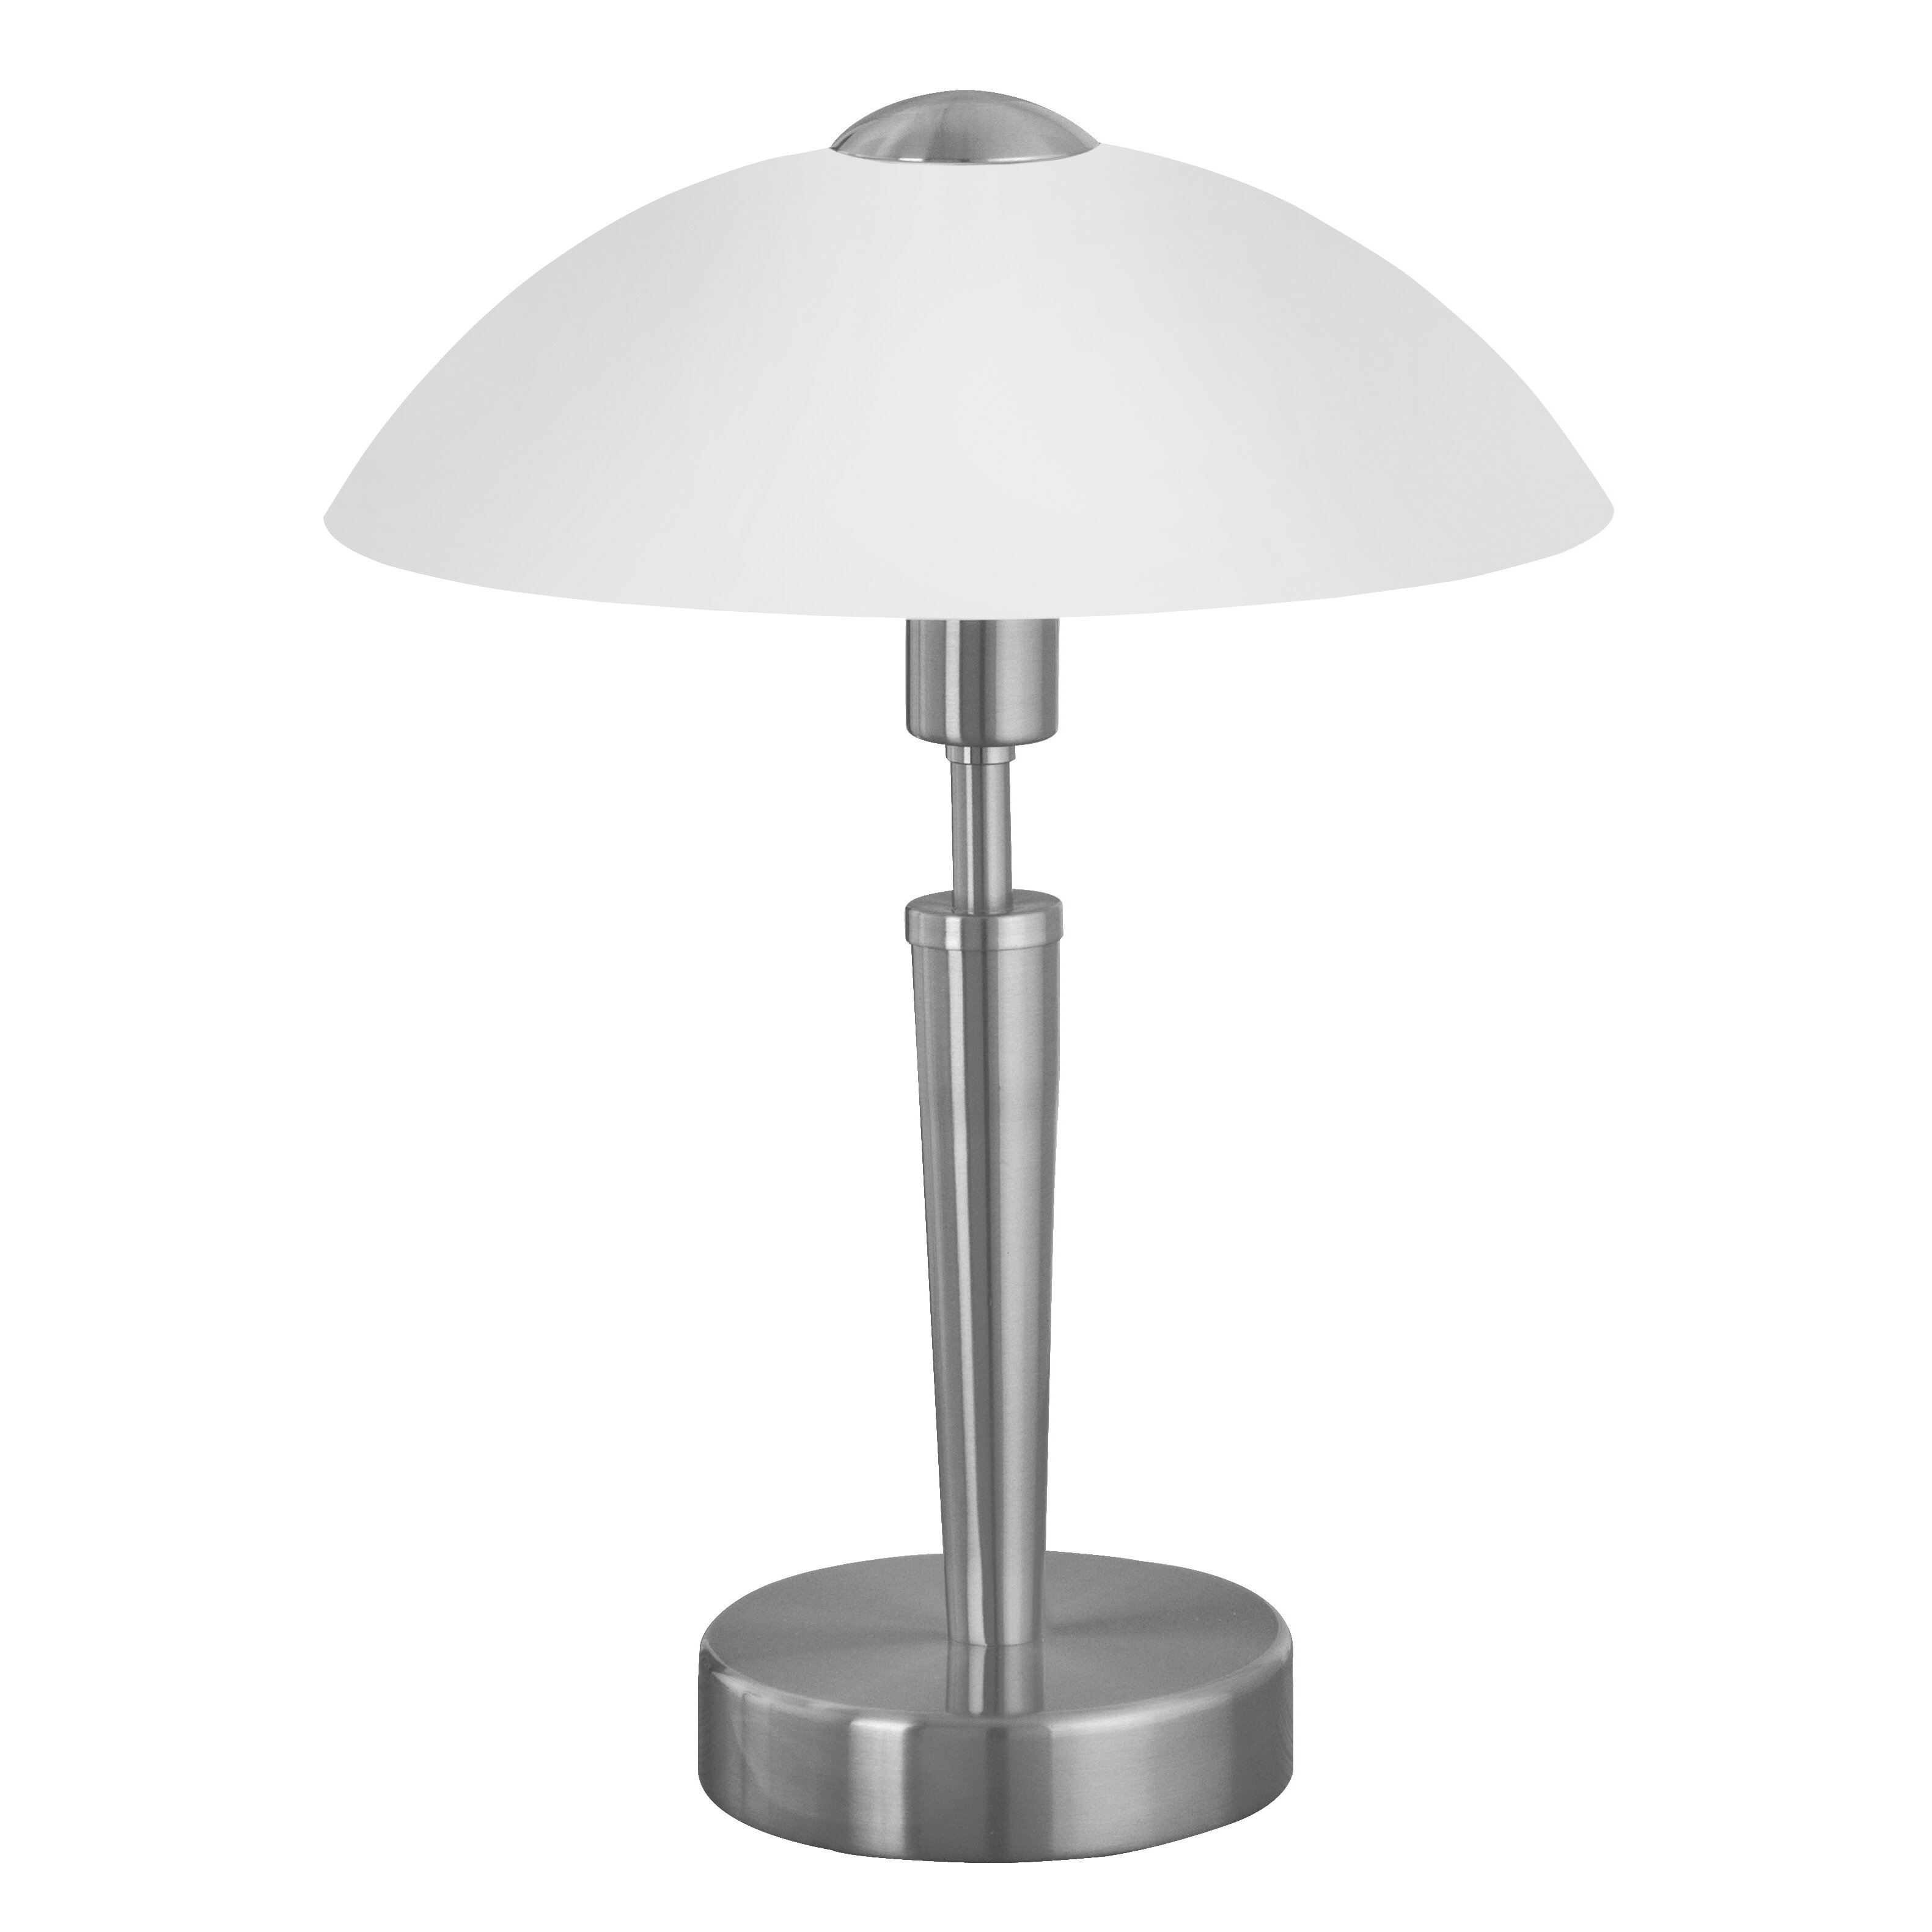 One Touch Lamps Bedroom Touch Lamps Youll Love Wayfair